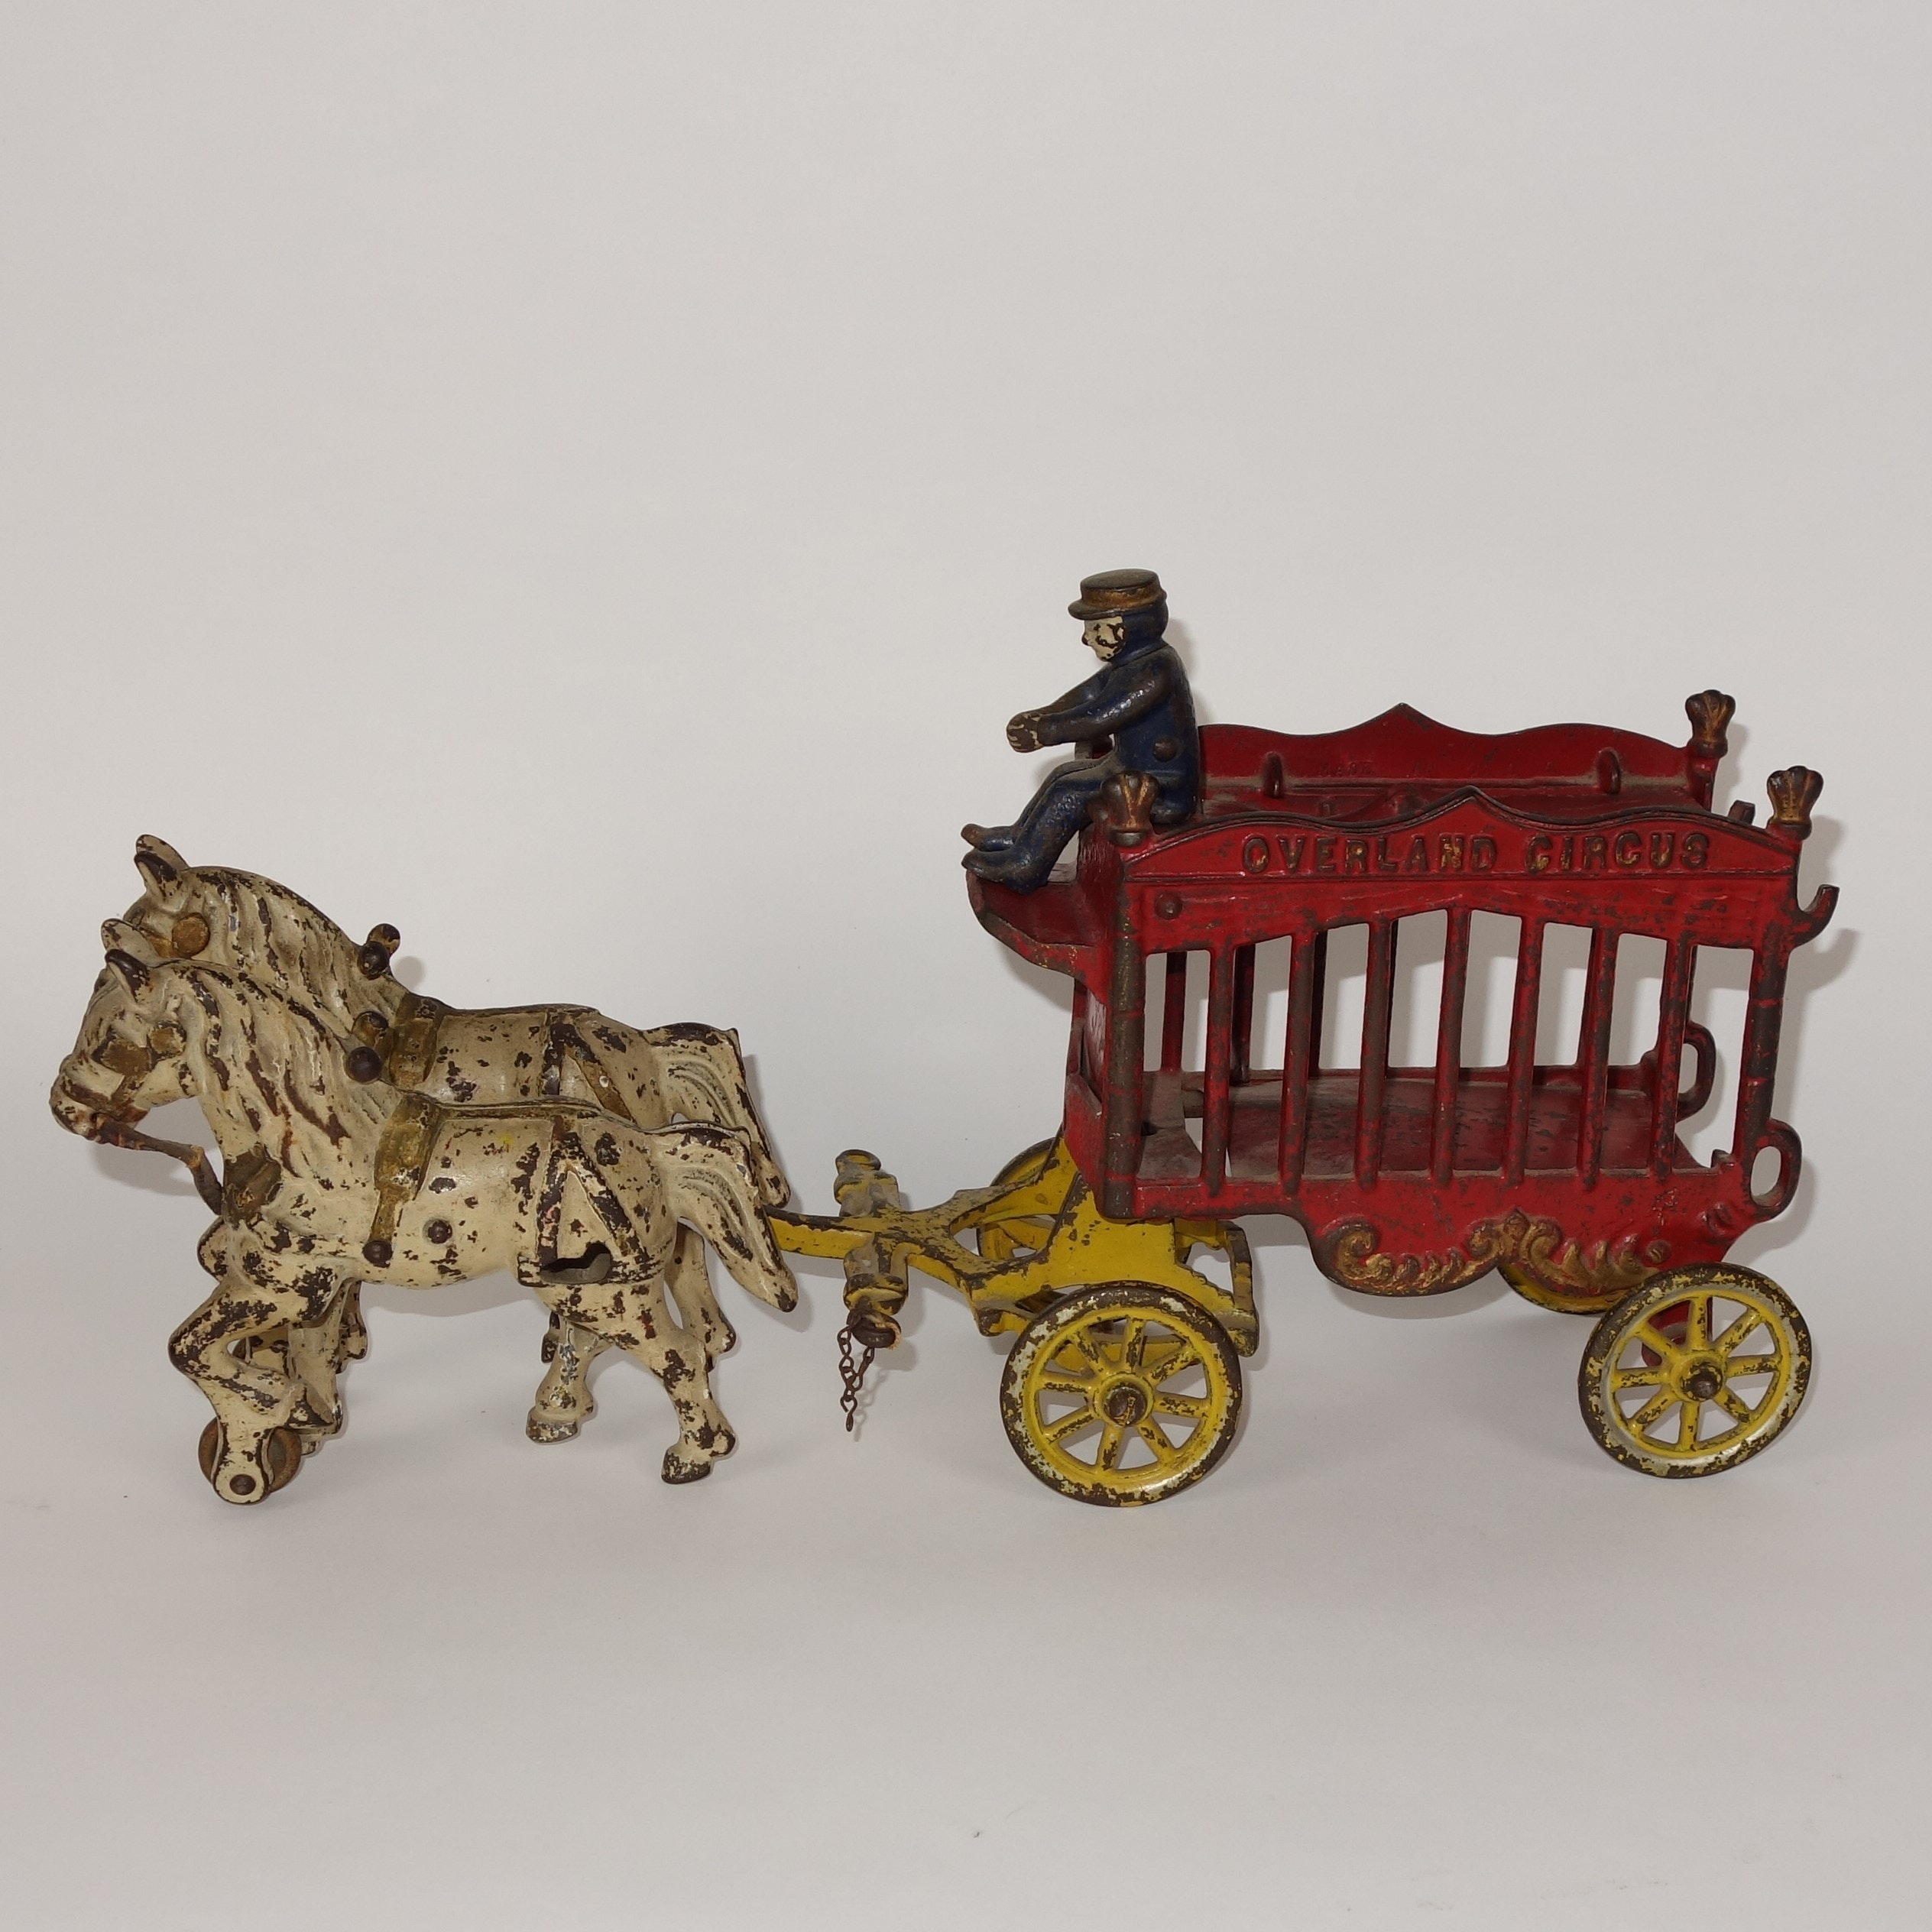 "Vintage Kenton ""Overland Circus"" Cast Iron Horse and Wagon Toy"